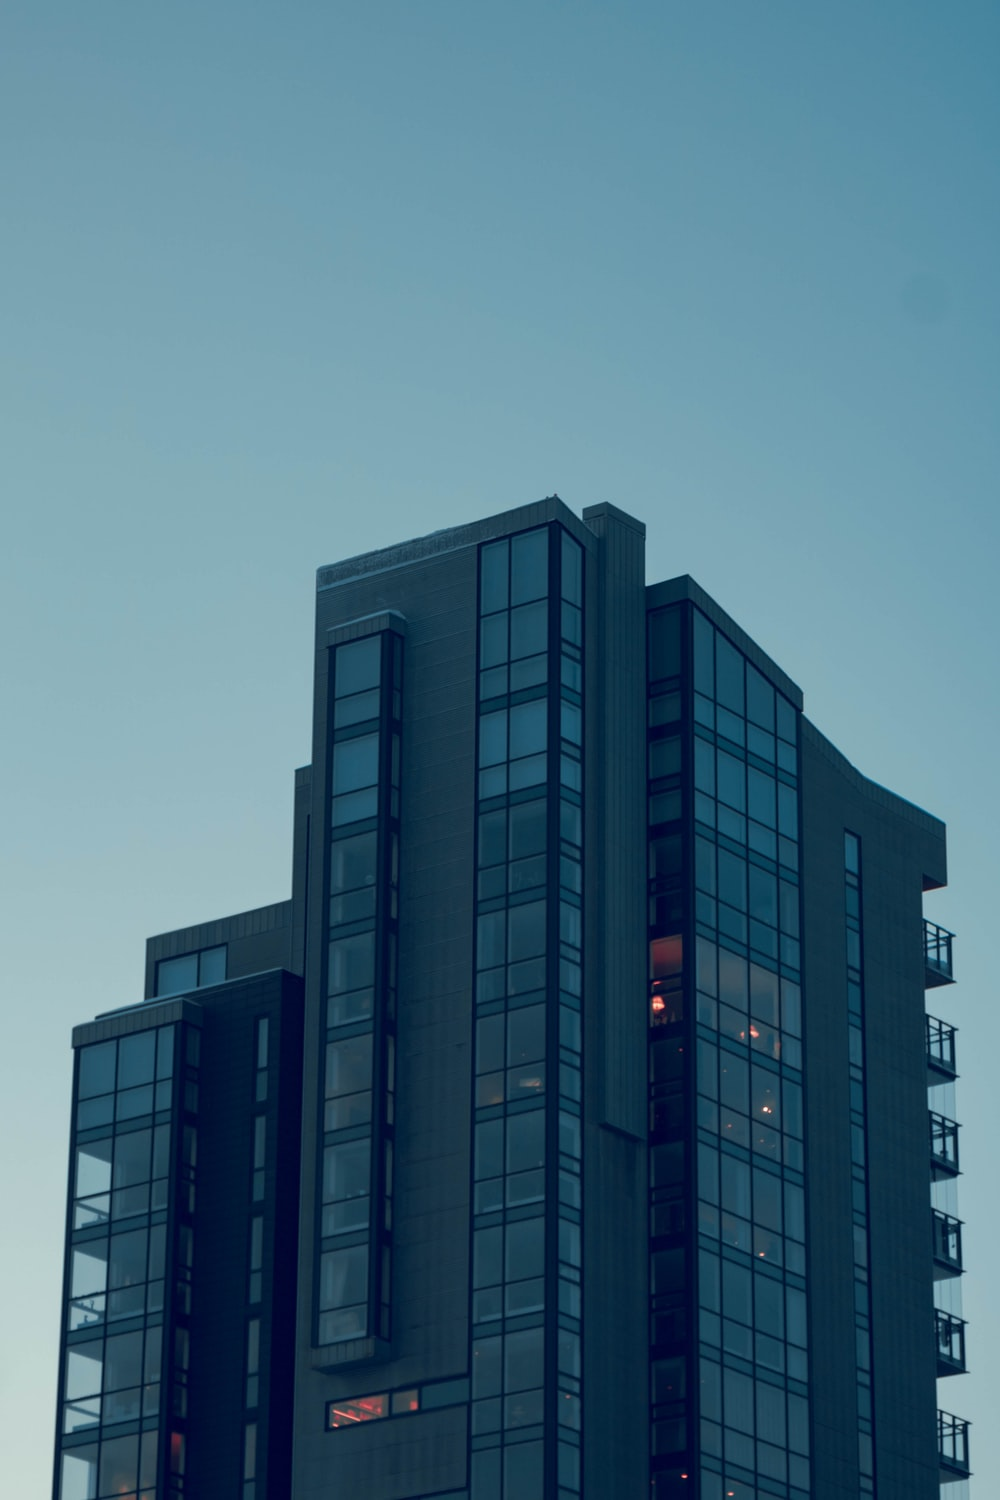 gray glass walled high-rise buildings during daytime